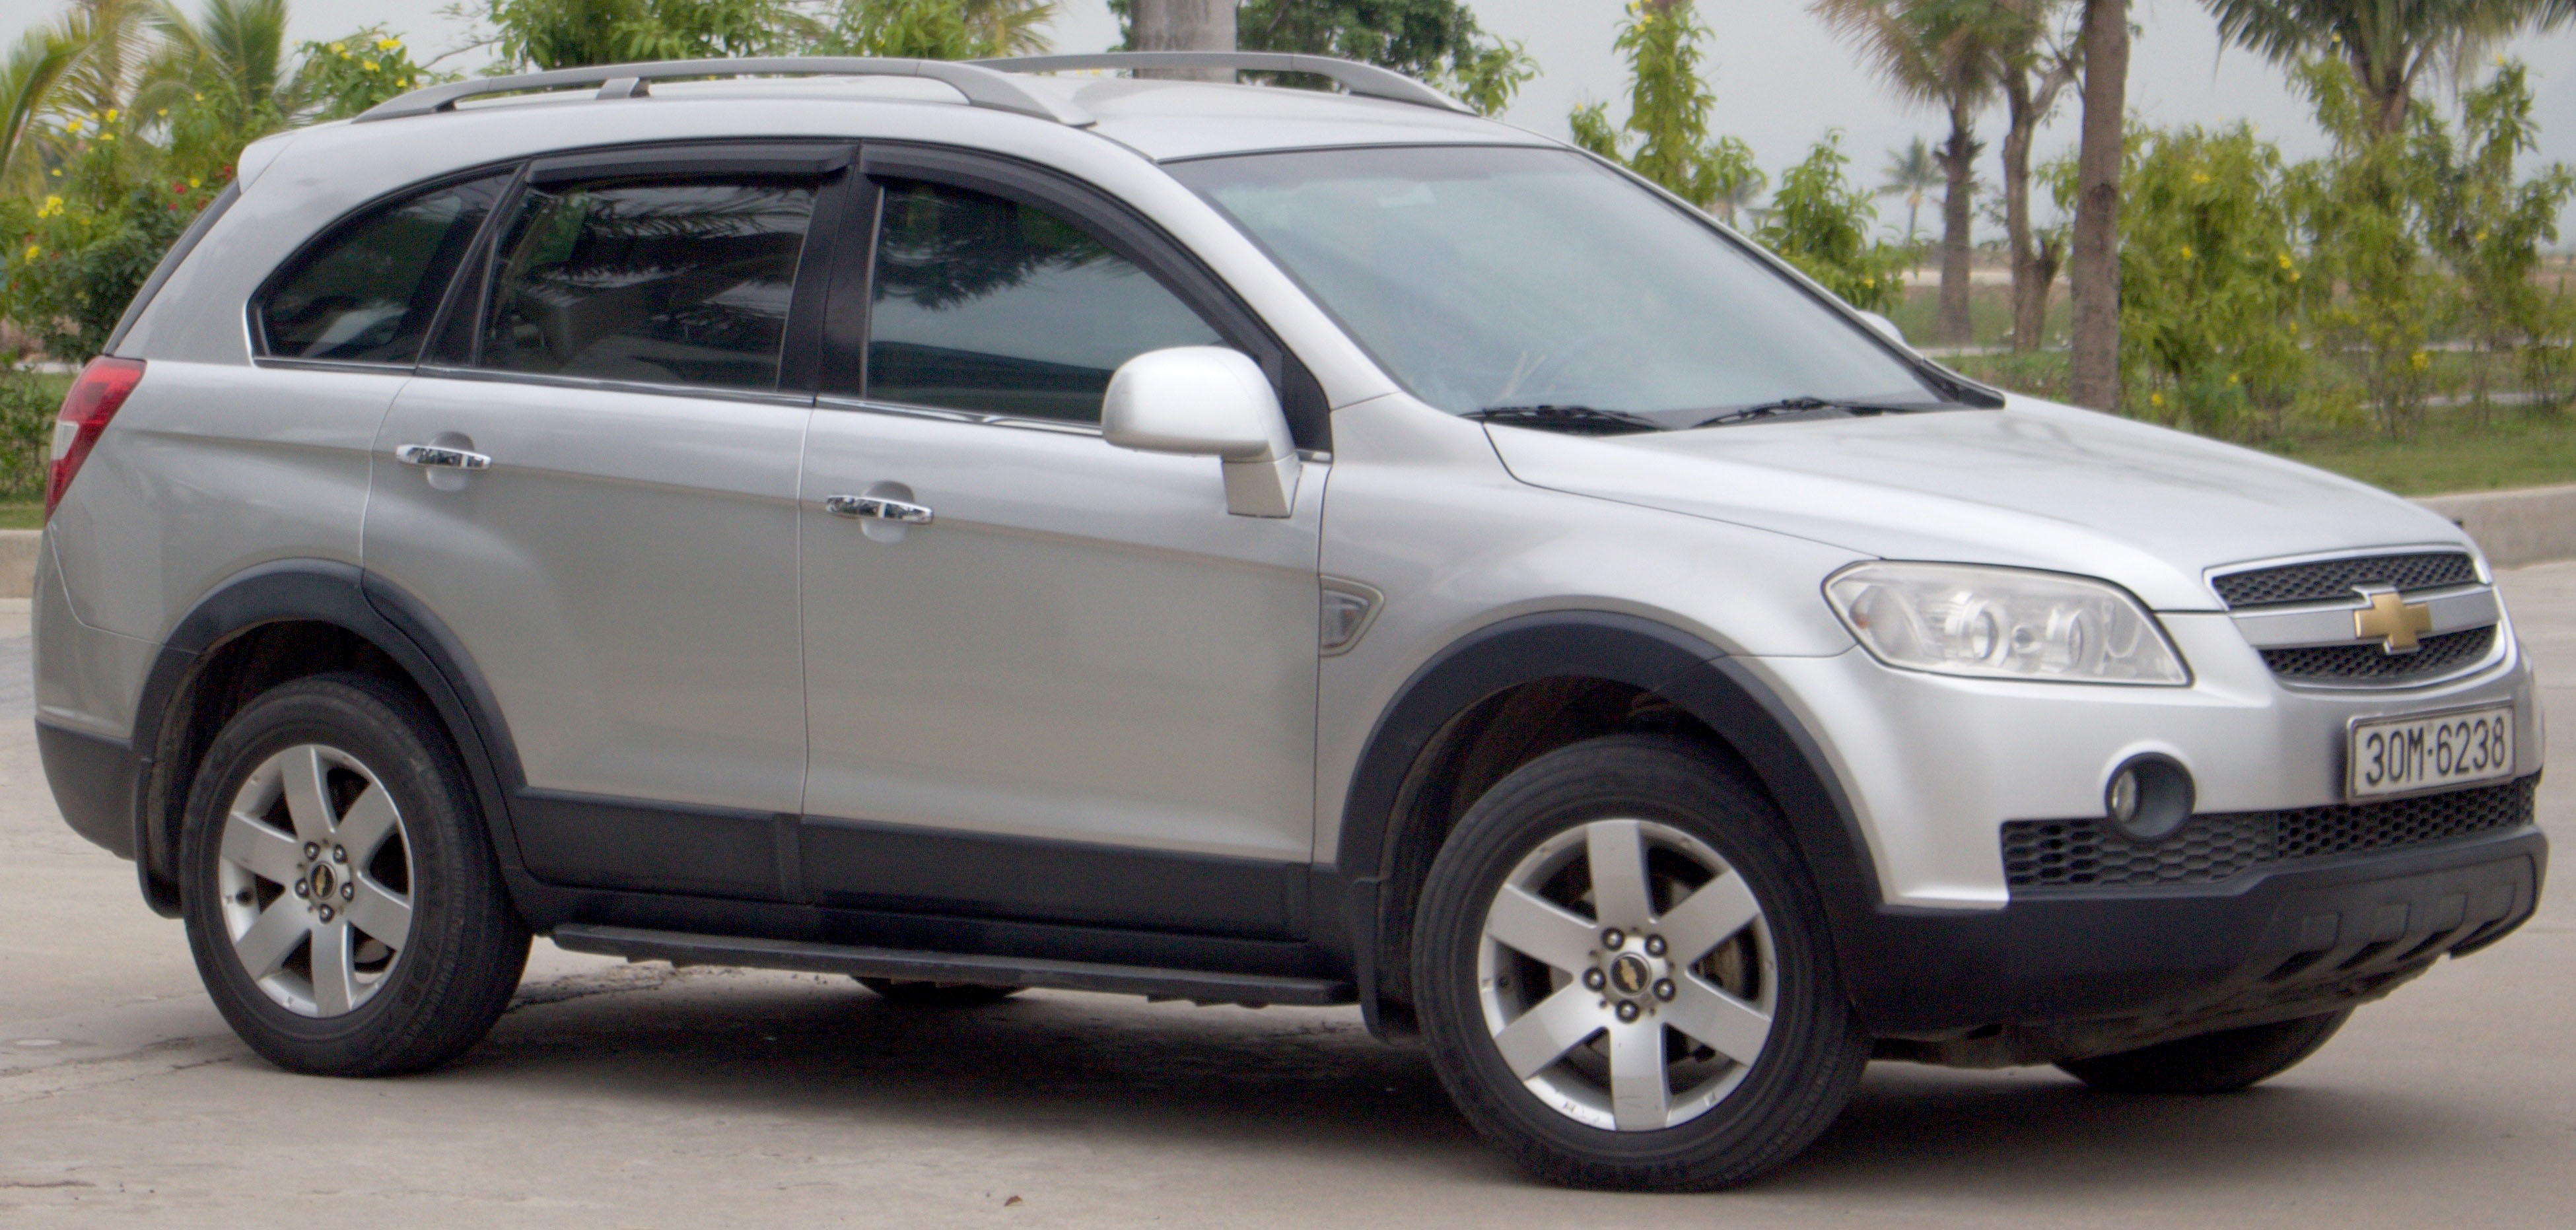 Chevy Small Suv >> Chevrolet Captiva - Wikiwand